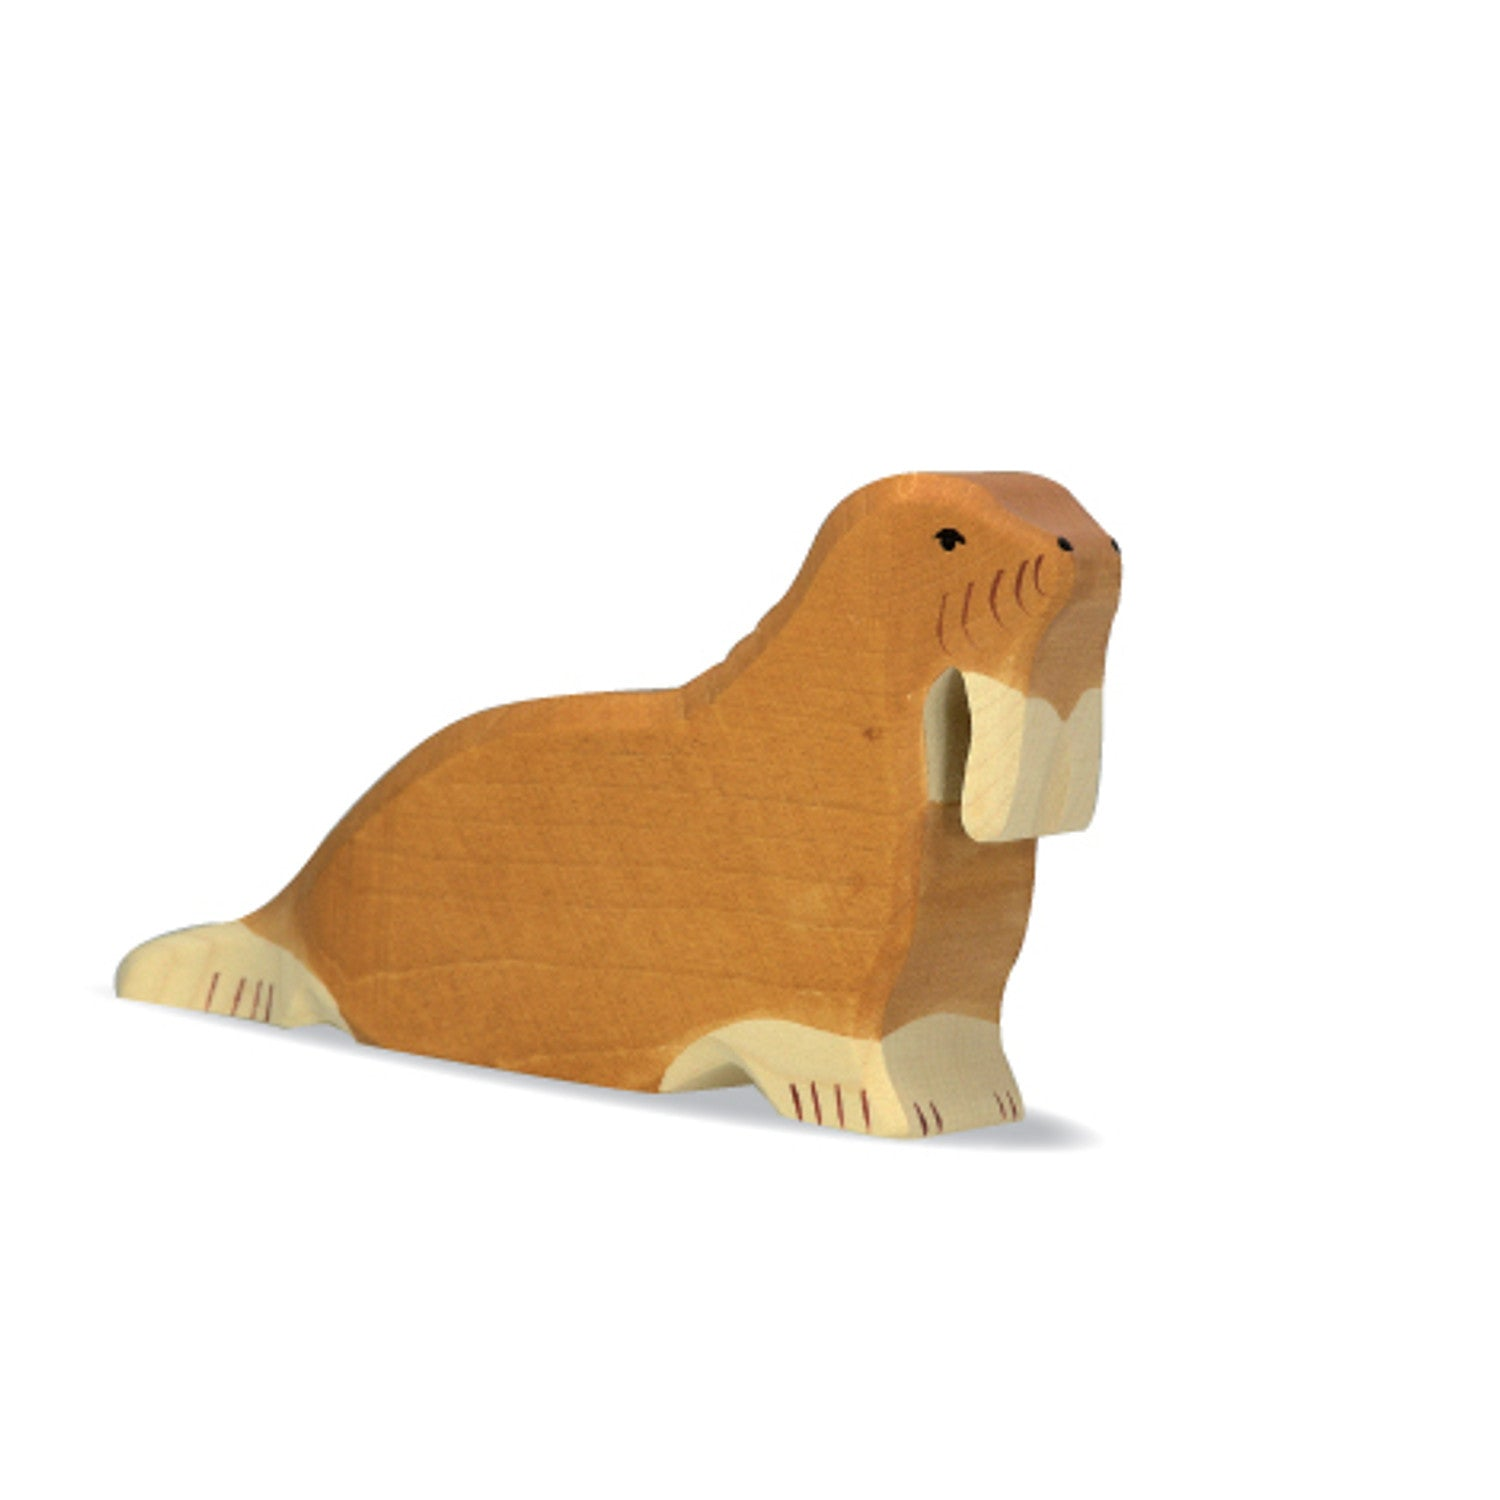 Holztiger wooden hand carved walrus figurine imaginative play